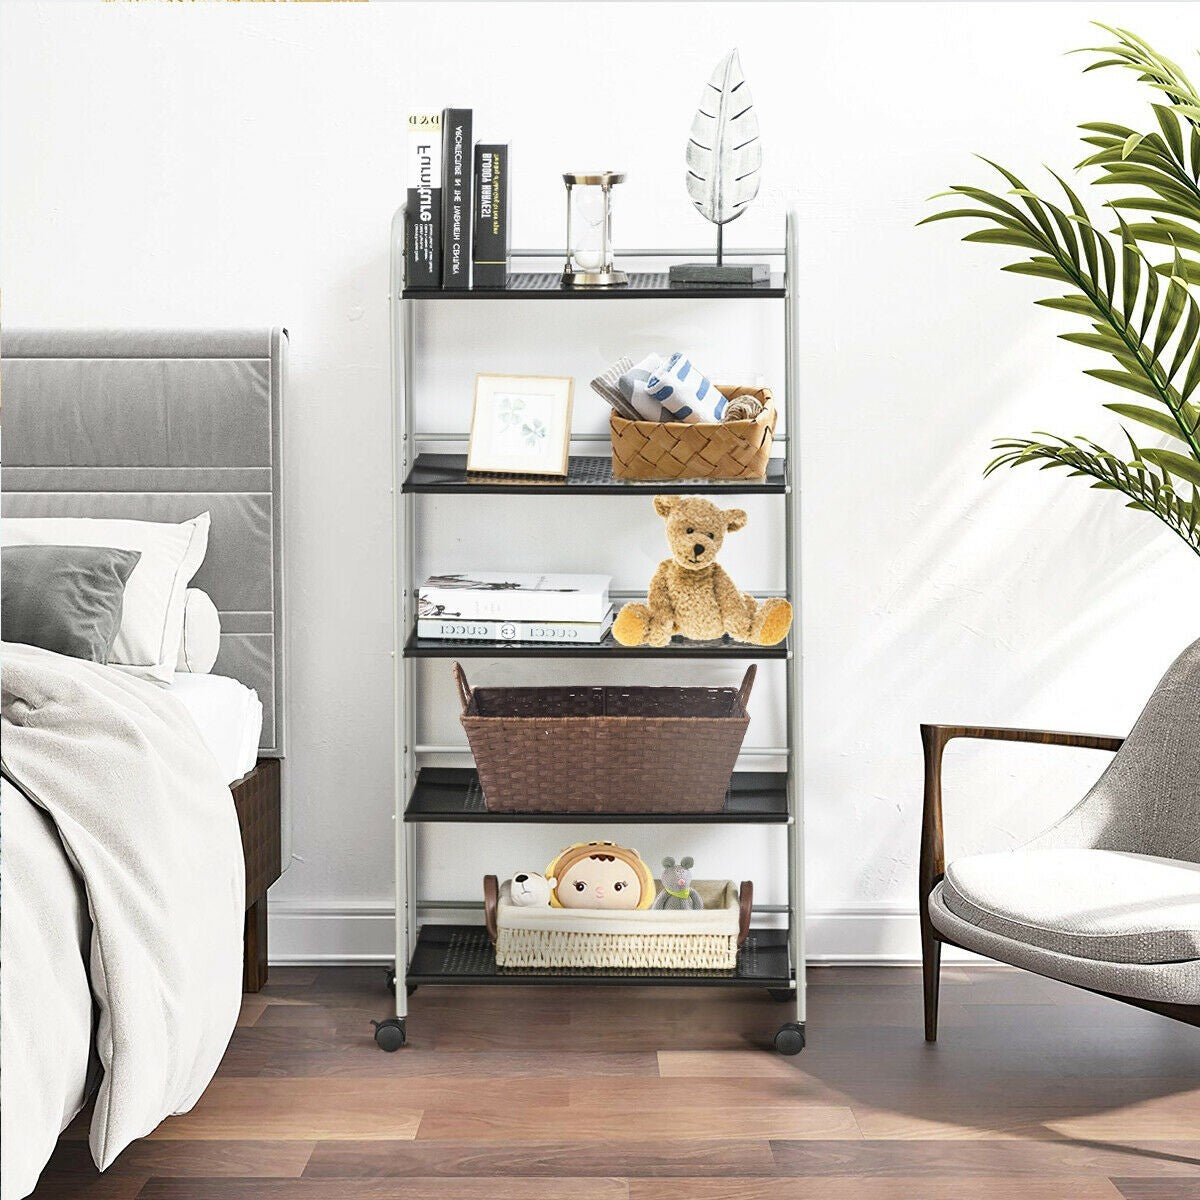 Premium Rolling Shelves Organizer Utility Cart Rolling for Storage Bedroom Living - Morealis